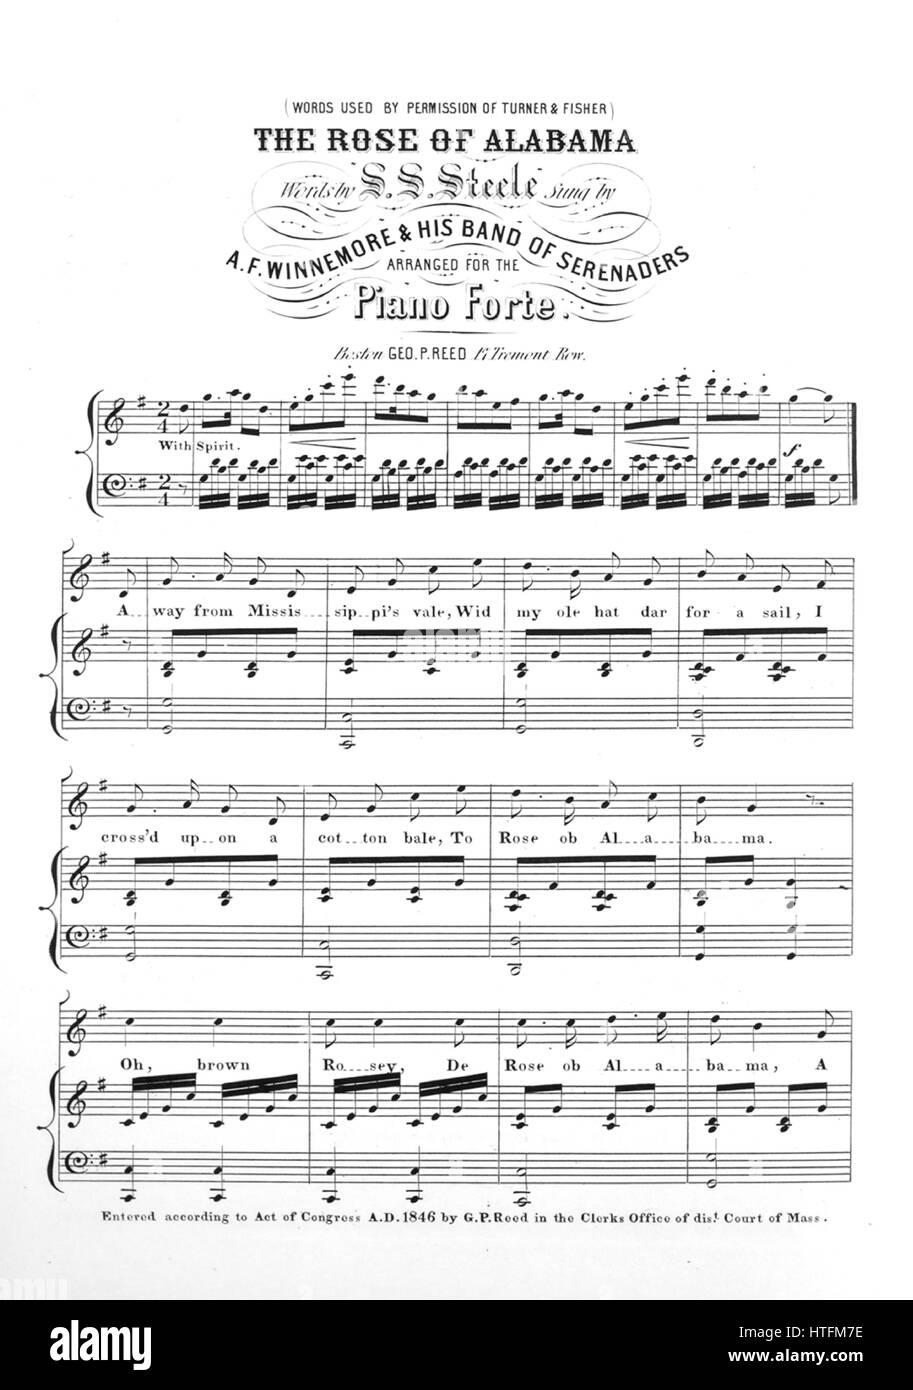 sheet music cover image of the song the rose of alabama words used